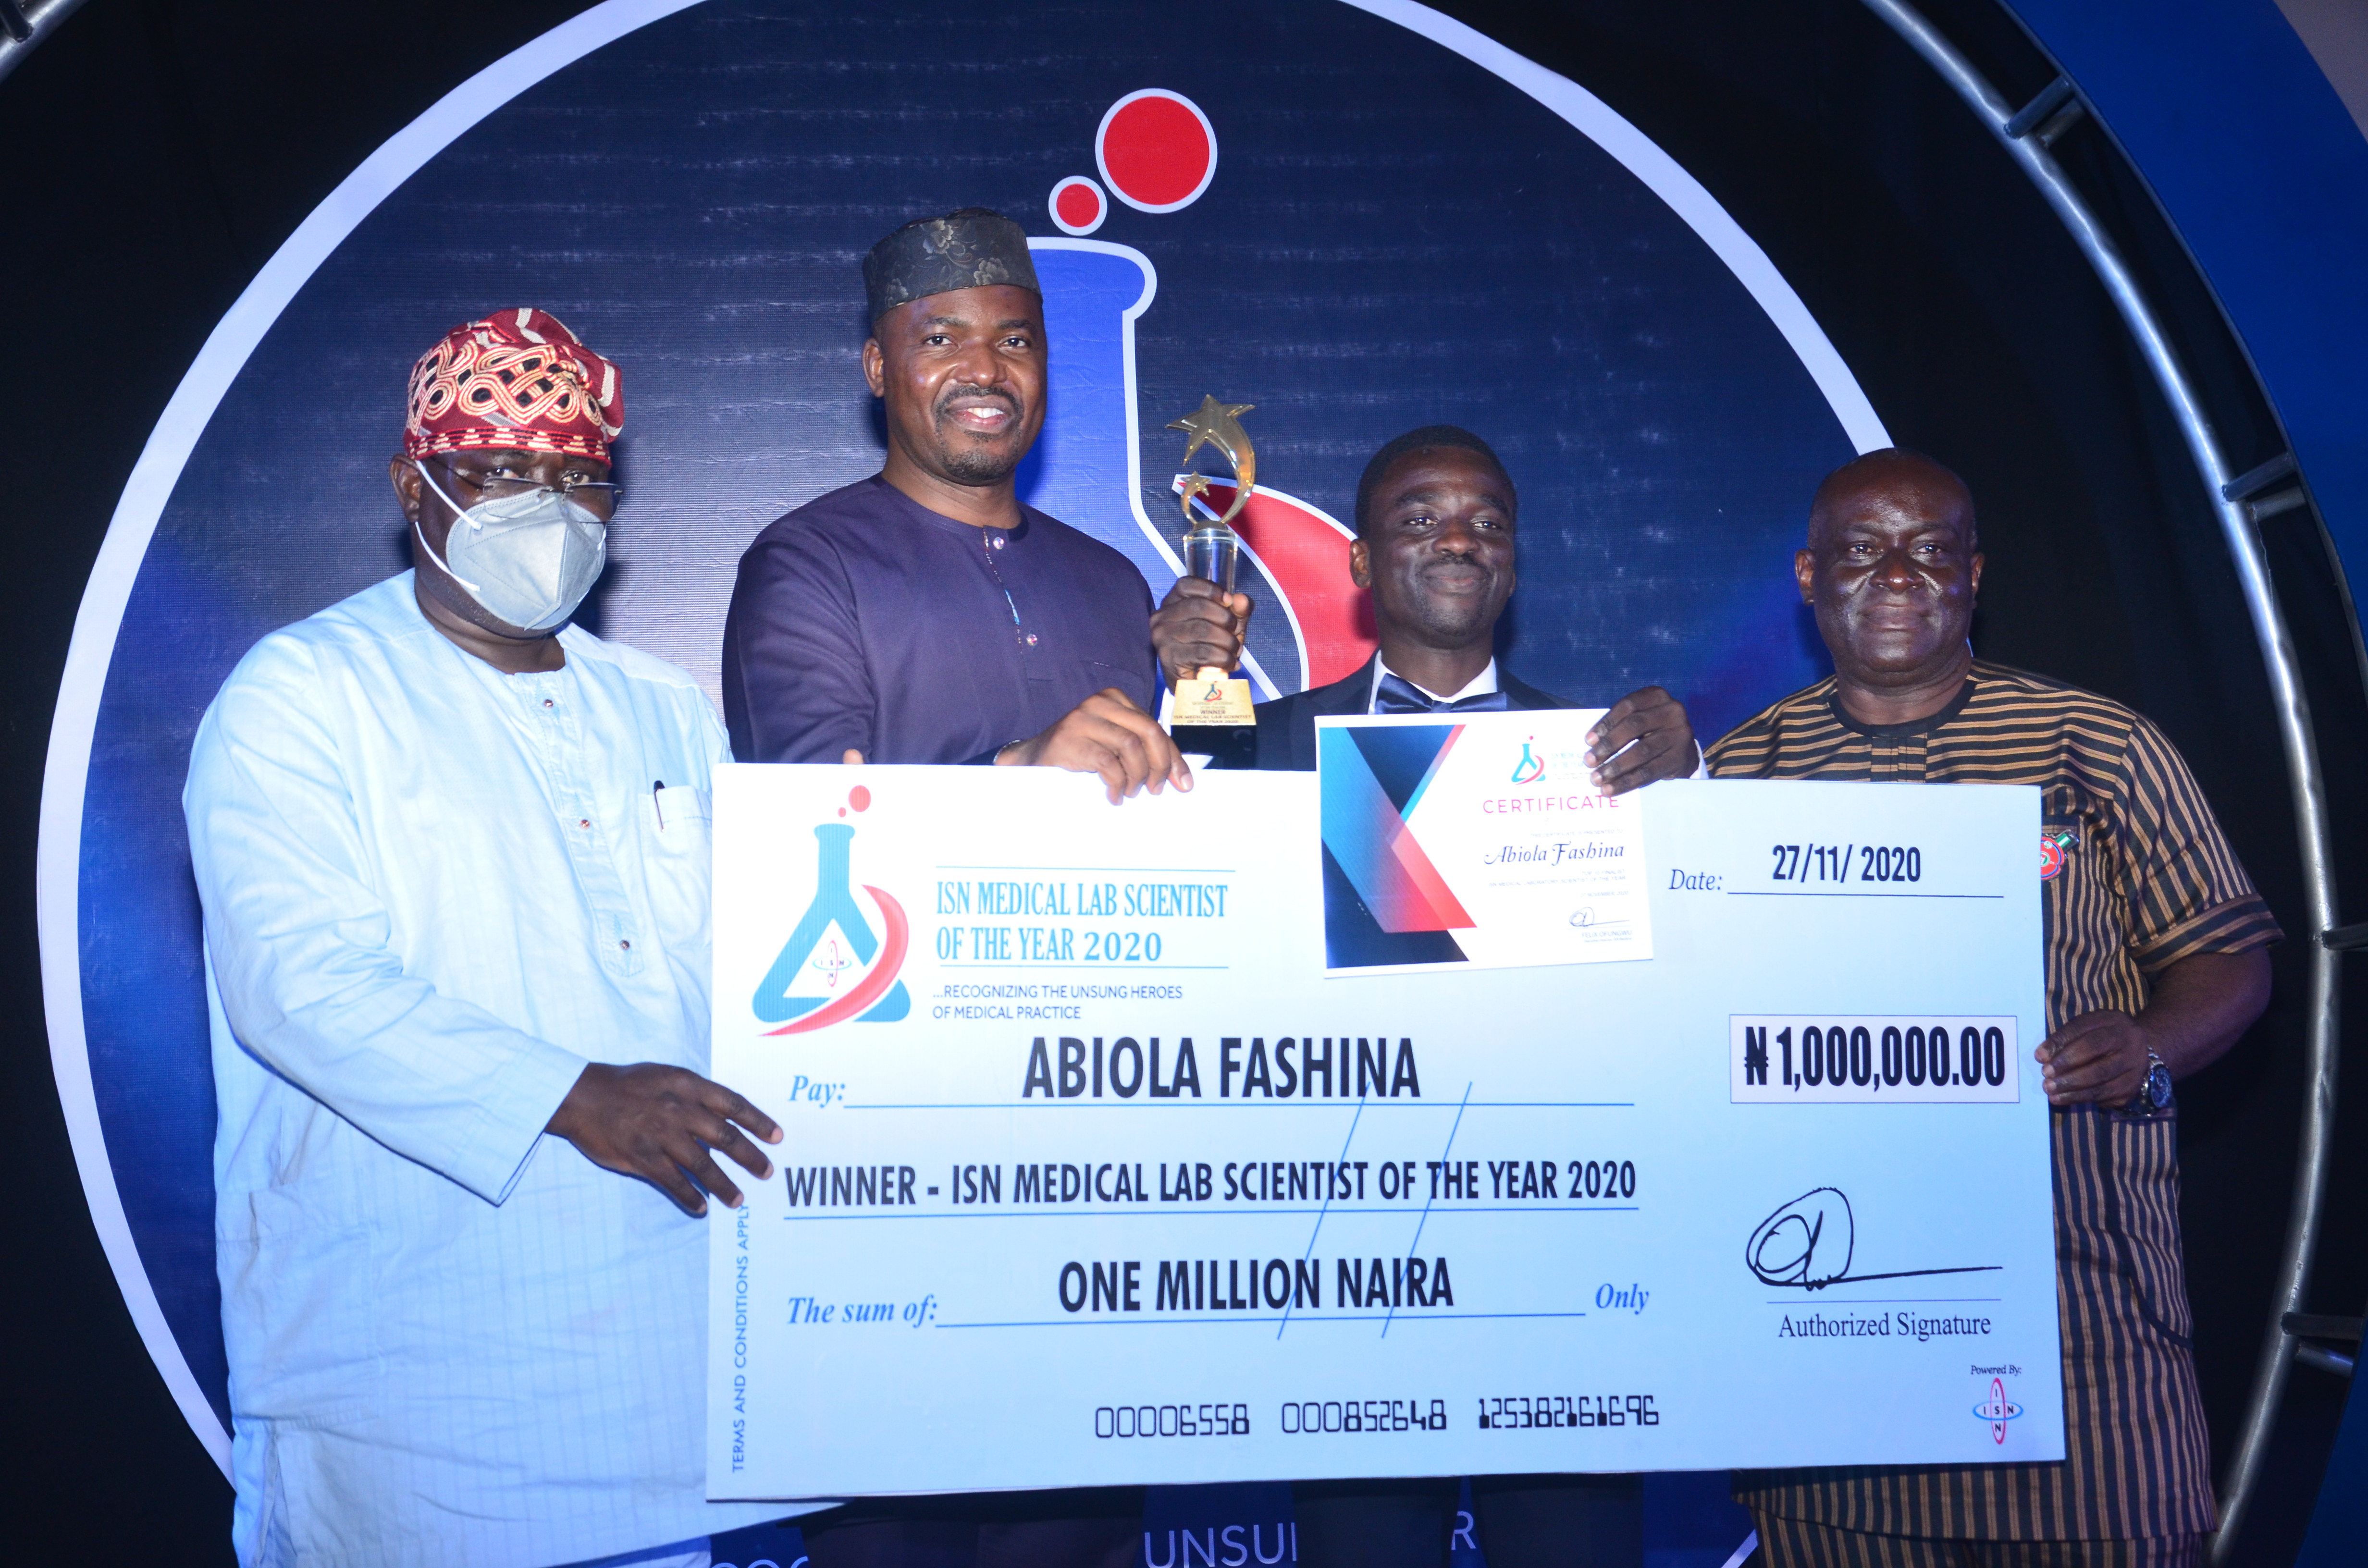 Abiola Fashina Emerges Winner of ISN Medical Laboratory Scientist of the Year Award 2020 lindaikejisblog1